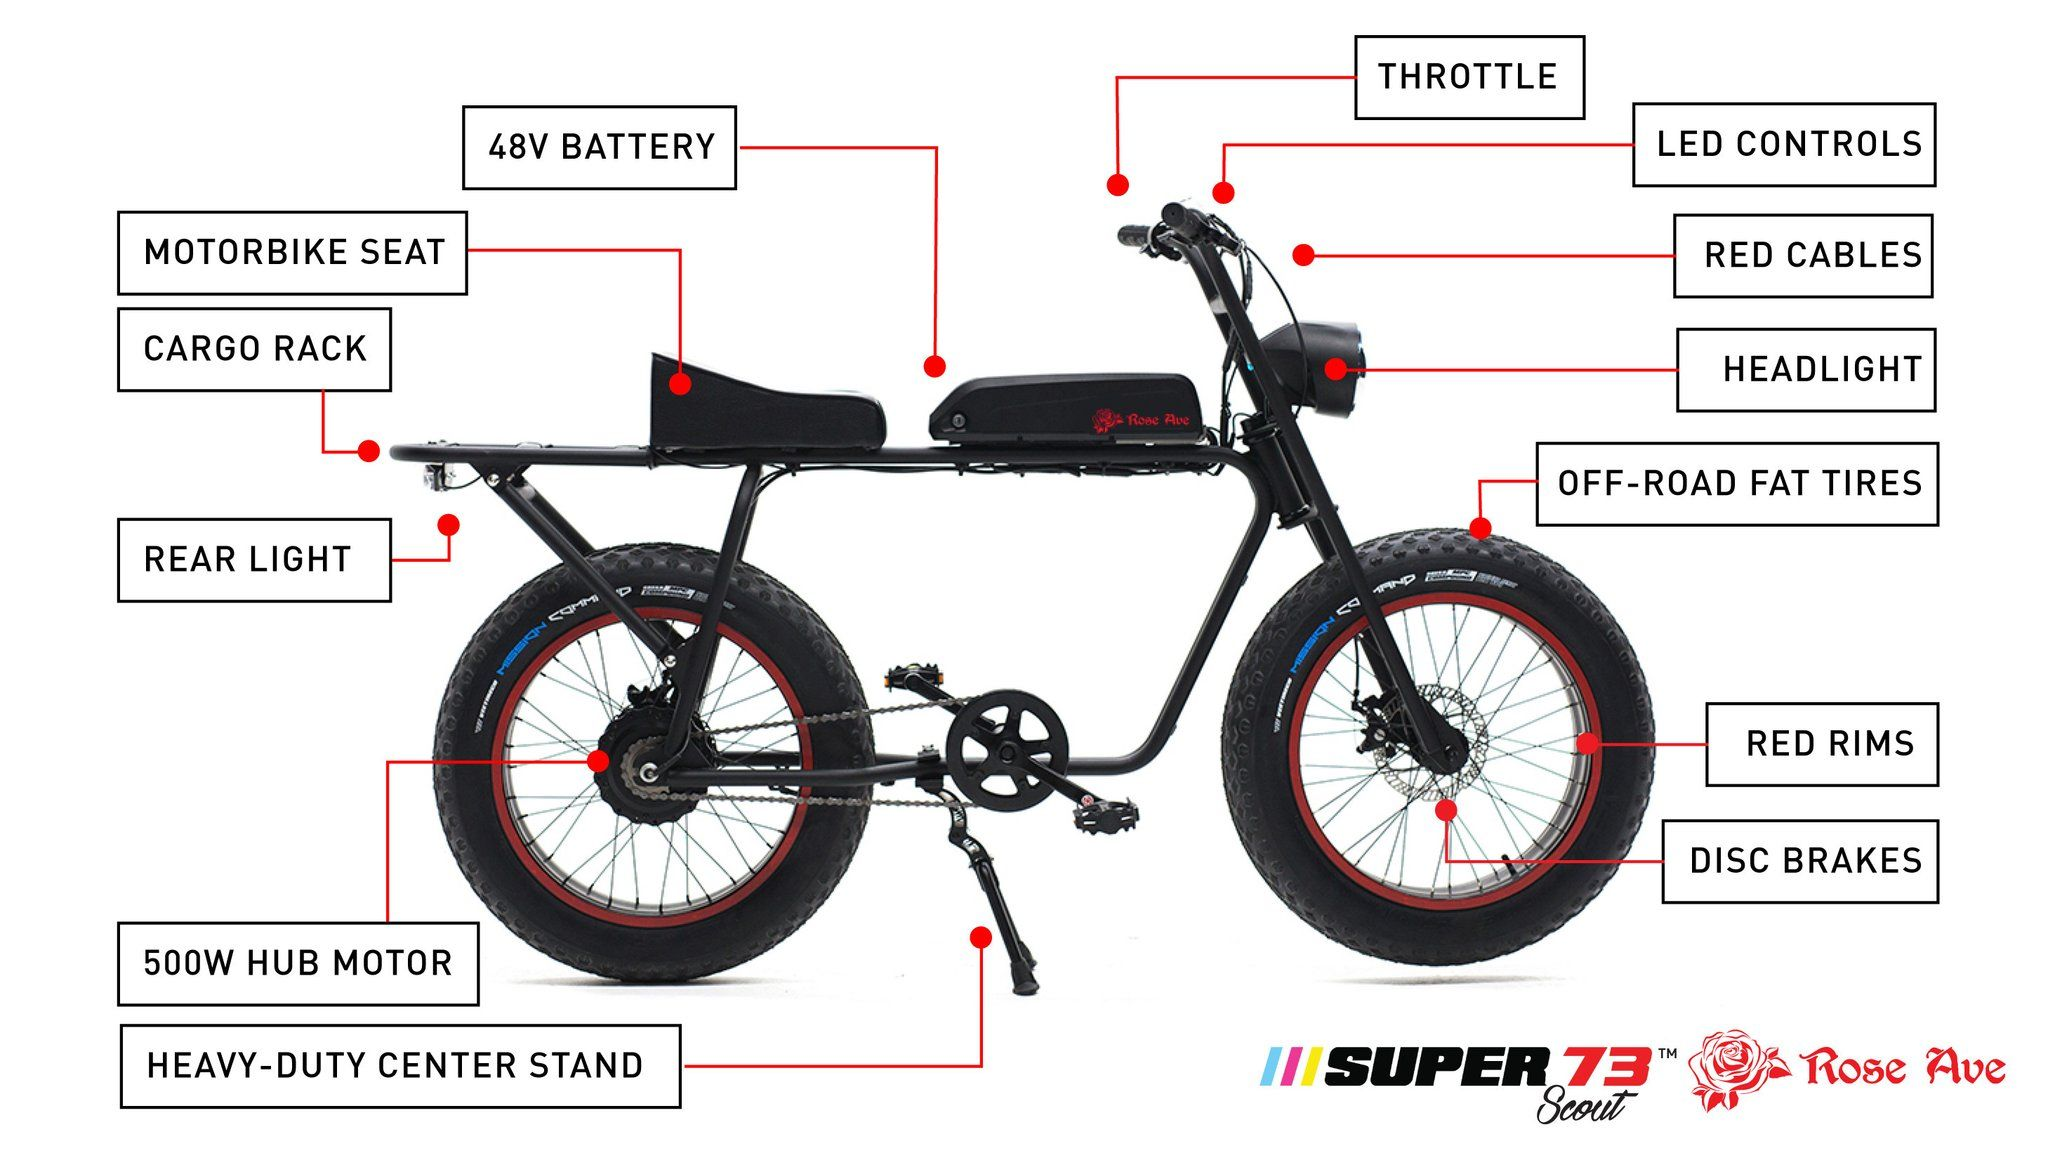 Two New Super 73 Models Infinite Adventures The Scout 995 For